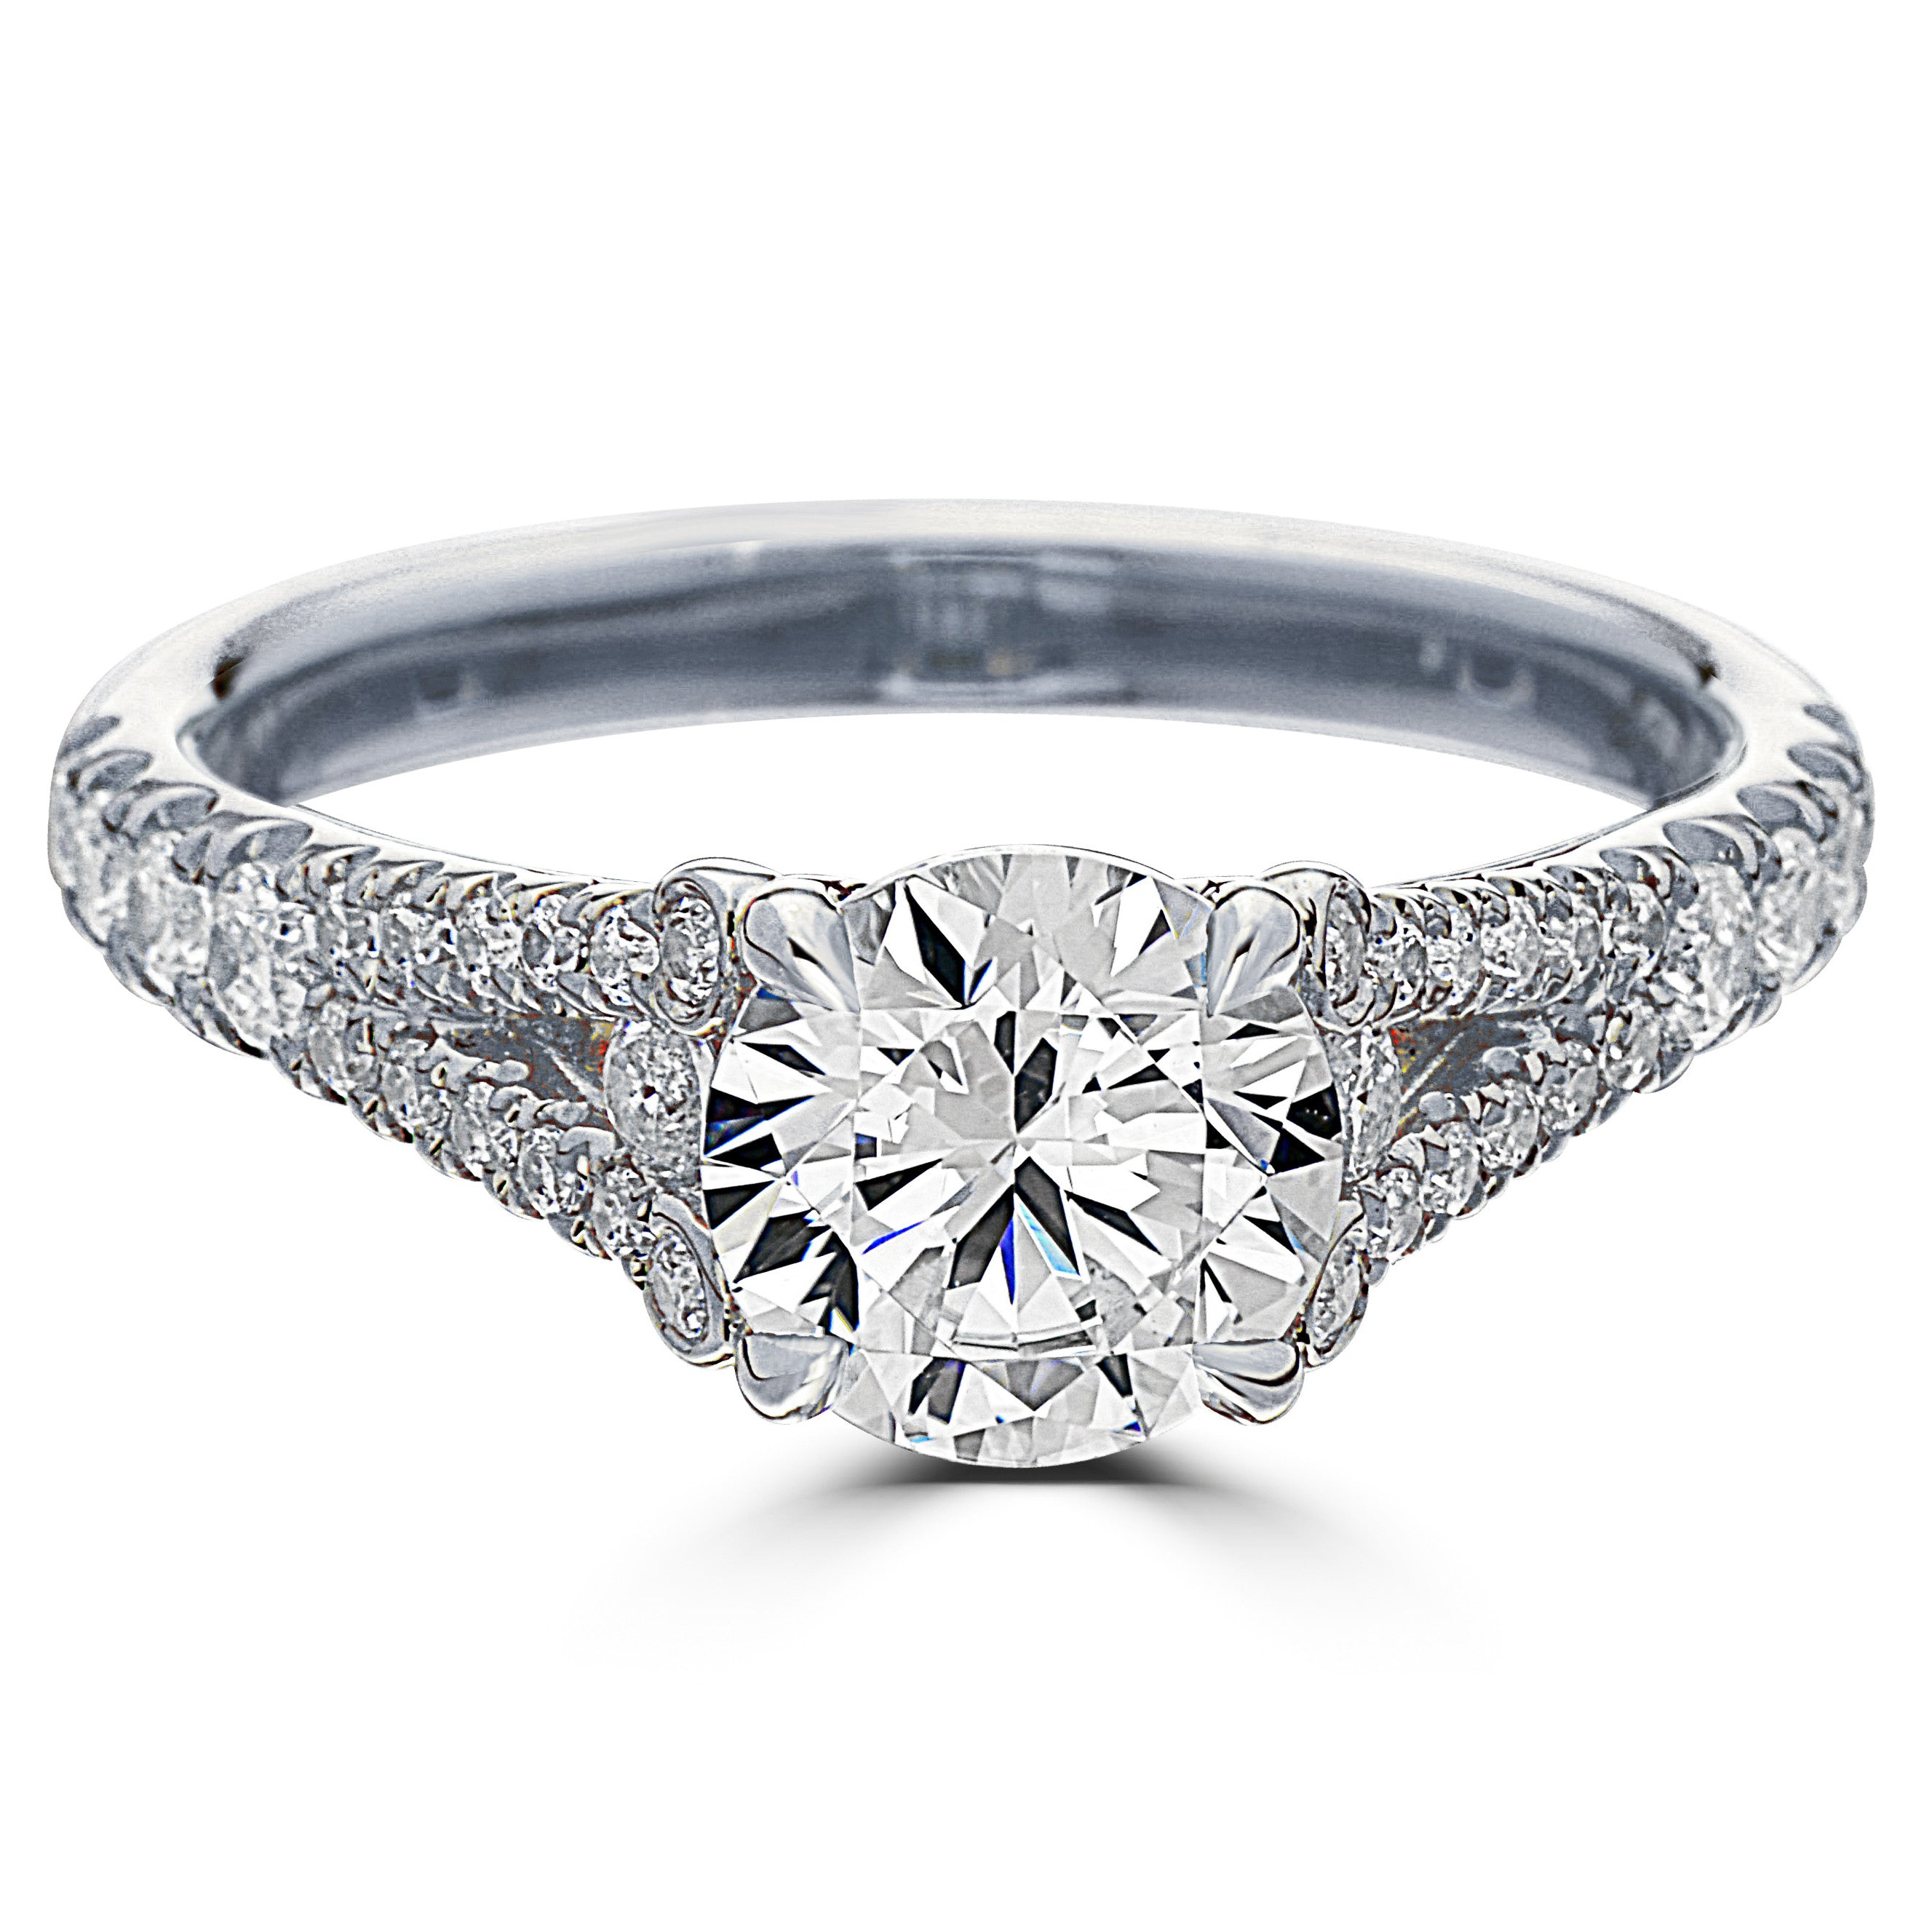 pav diamond rings ring platinum duttsonrocks pave collections products bespoke engagement set tier